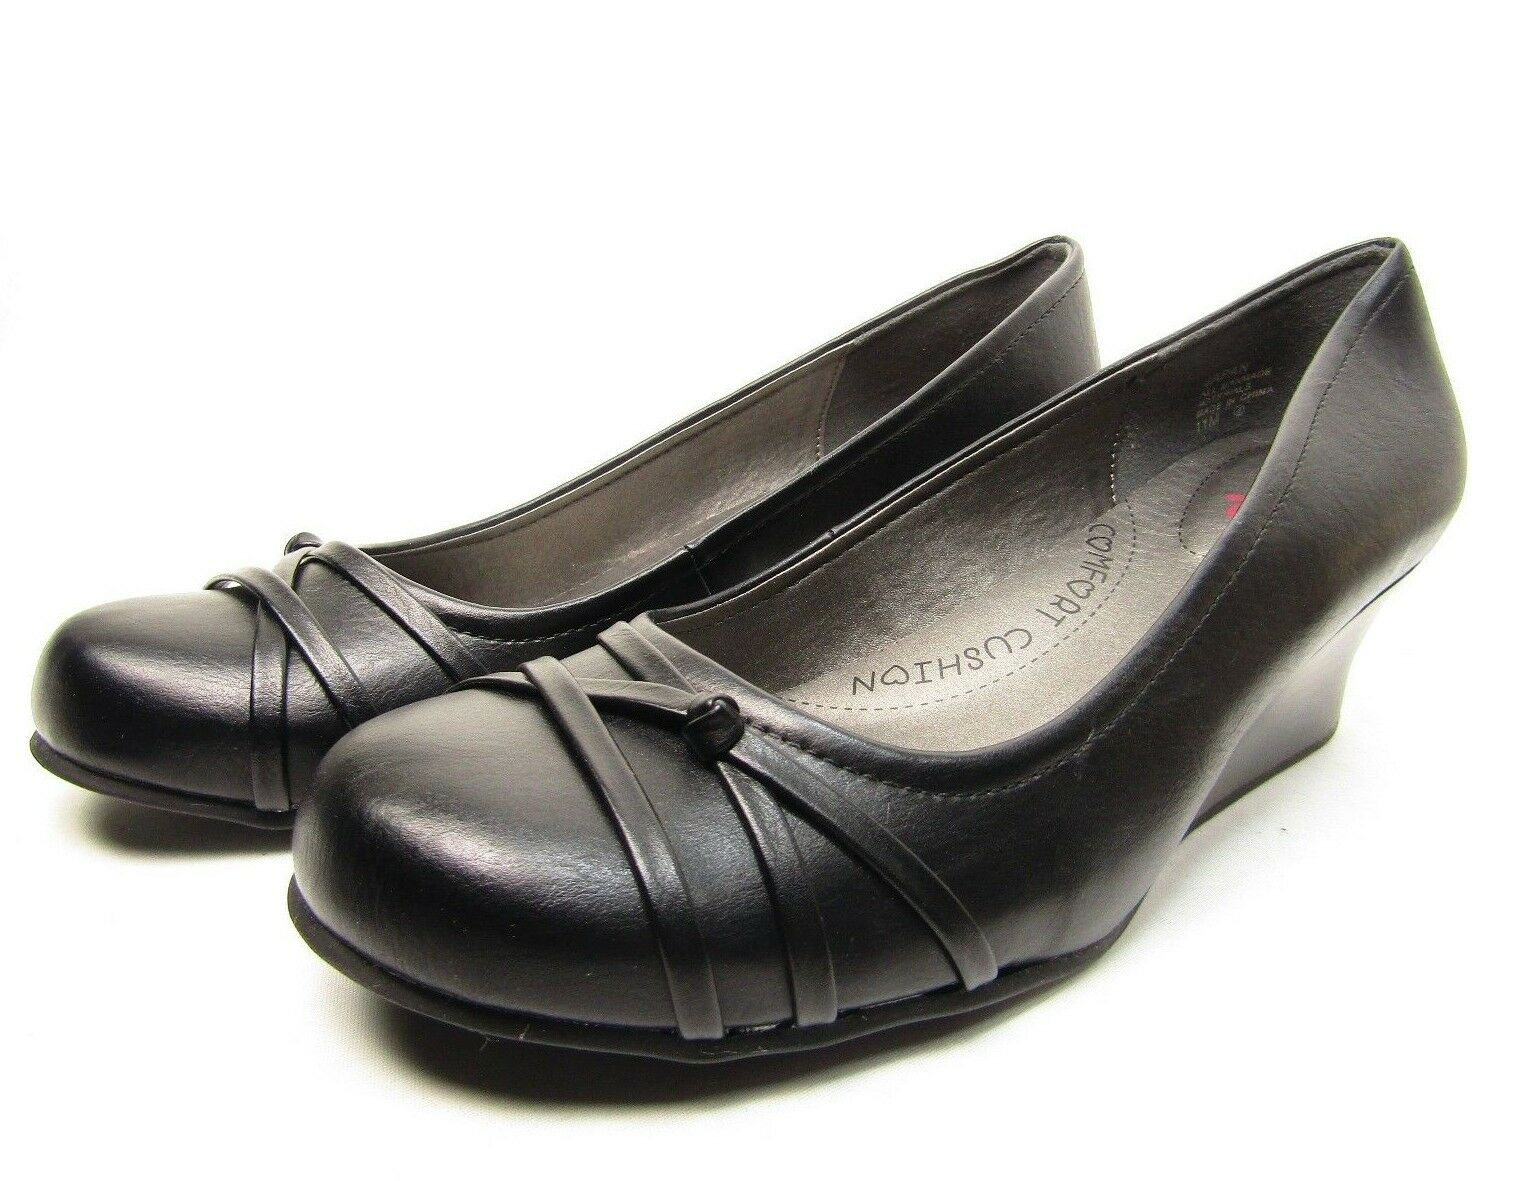 Pop Japan Slip-On Dress Wedges Black Size 11M